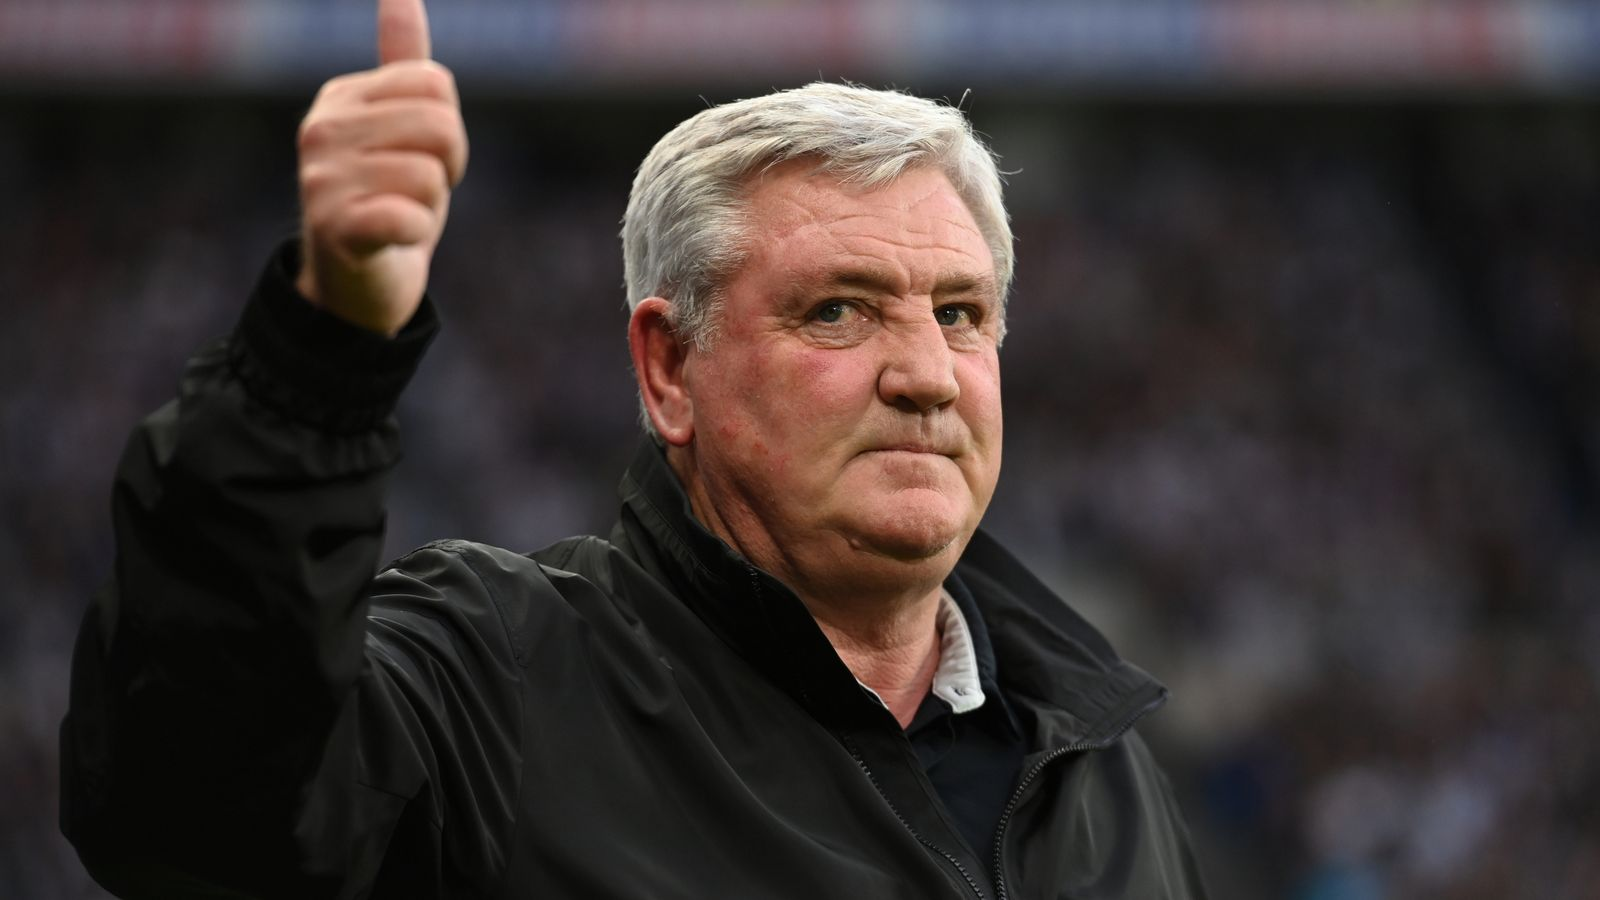 Steve-bruce-leves-Newcastle-by mutual consent